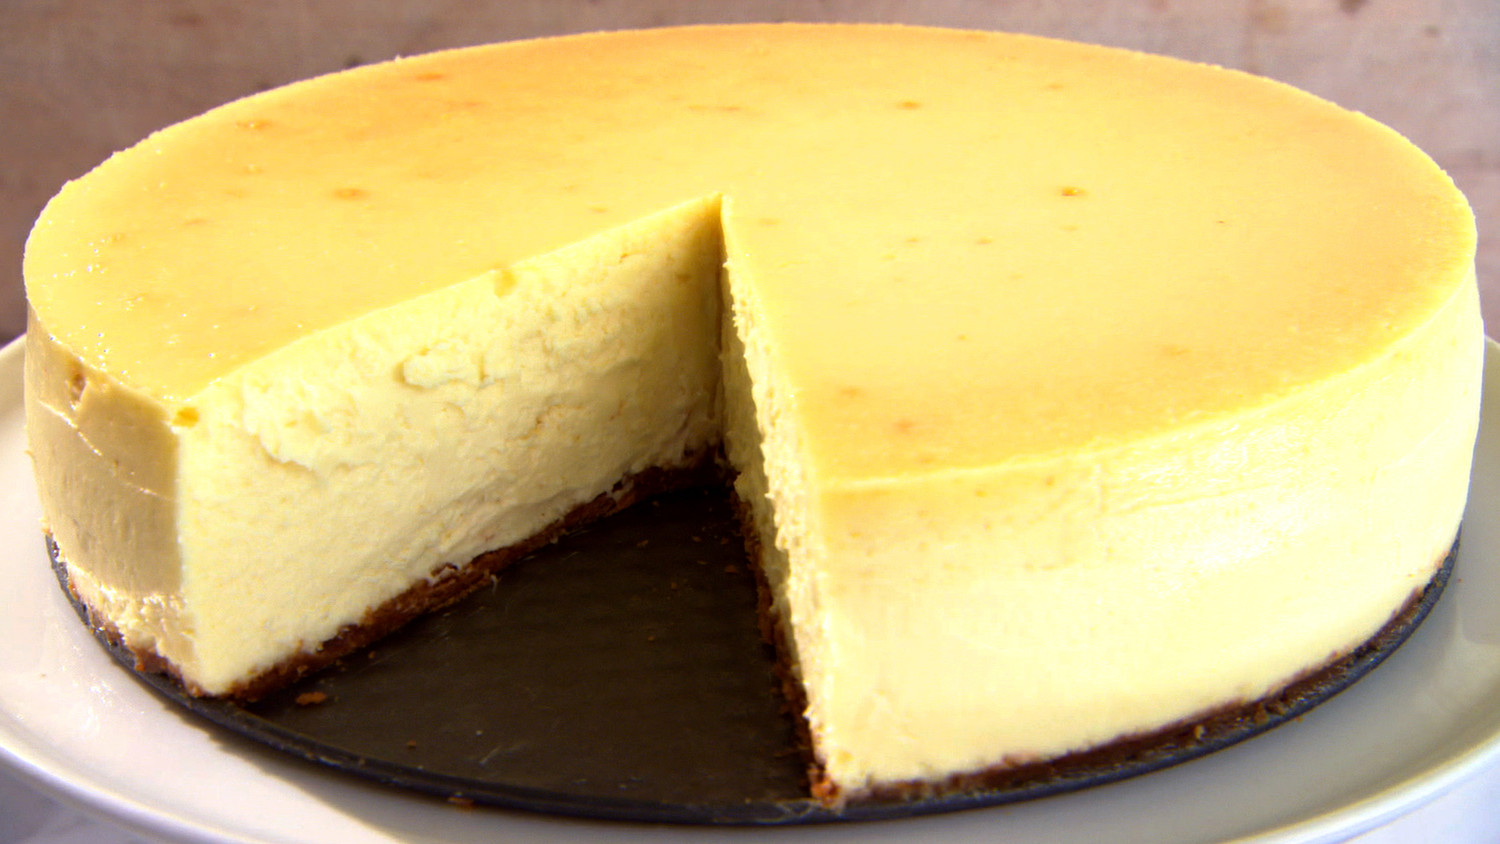 Variations on the theme of cheese cakes from cottage cheese recipe